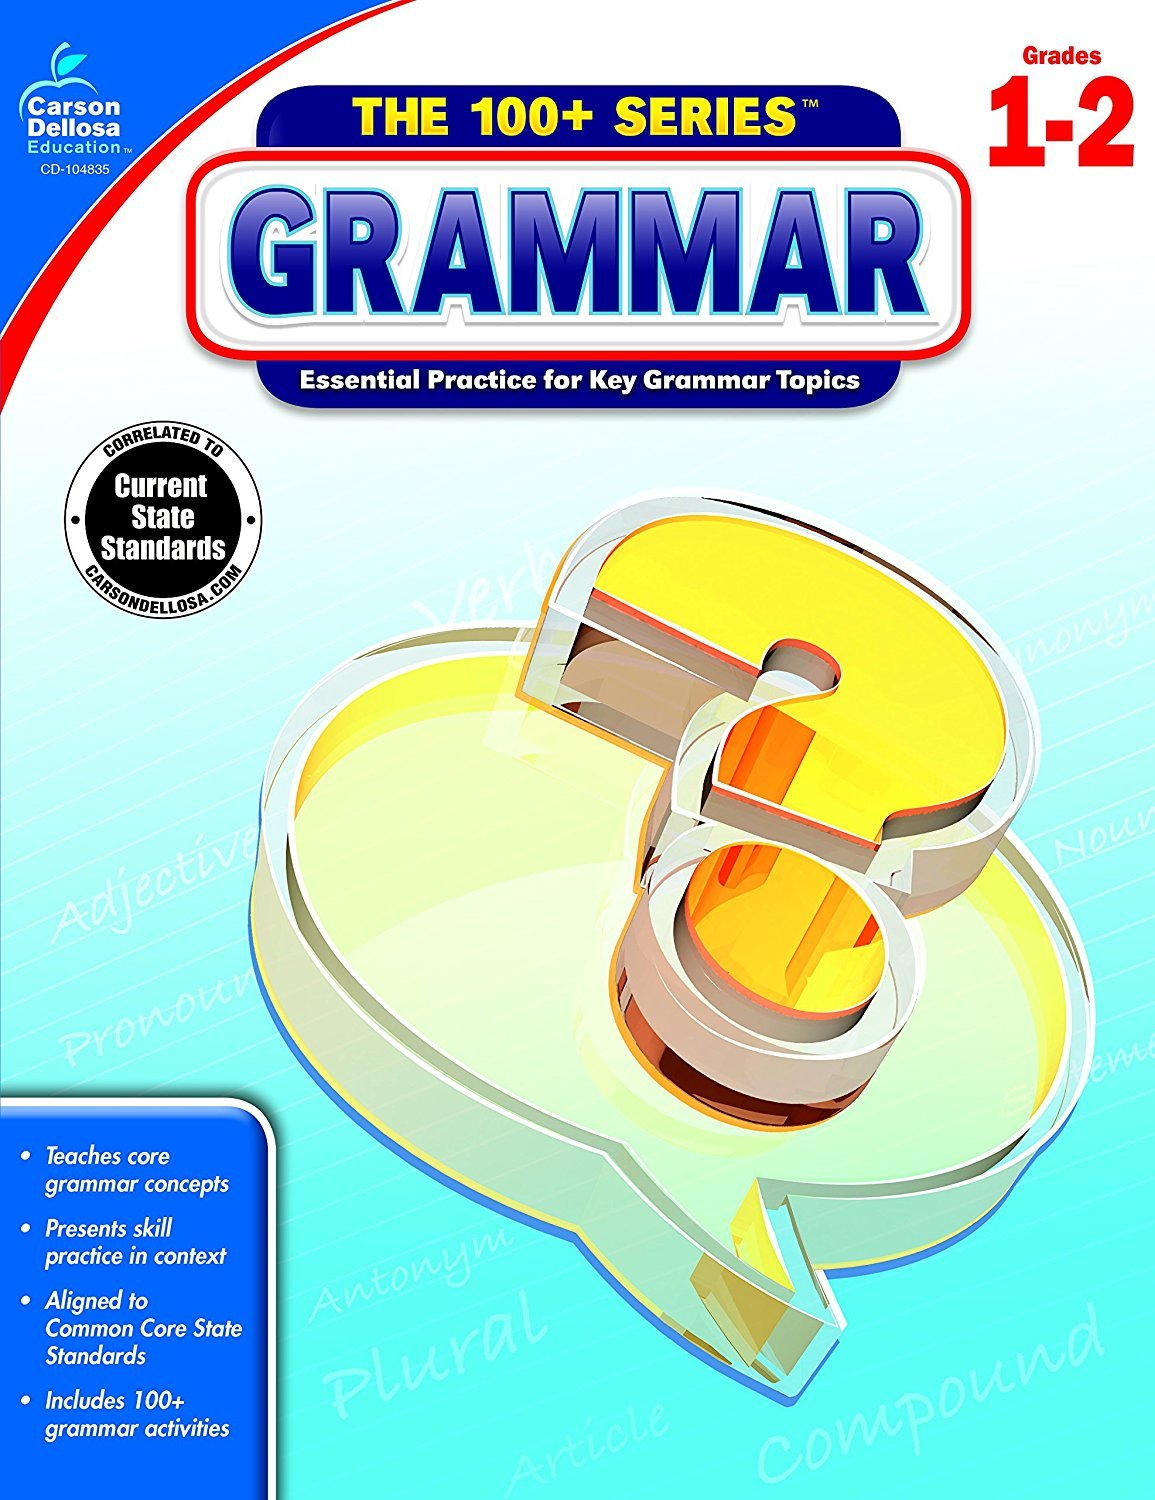 CD 104835 THE 100+ SERIES GRAMMAR G1-2